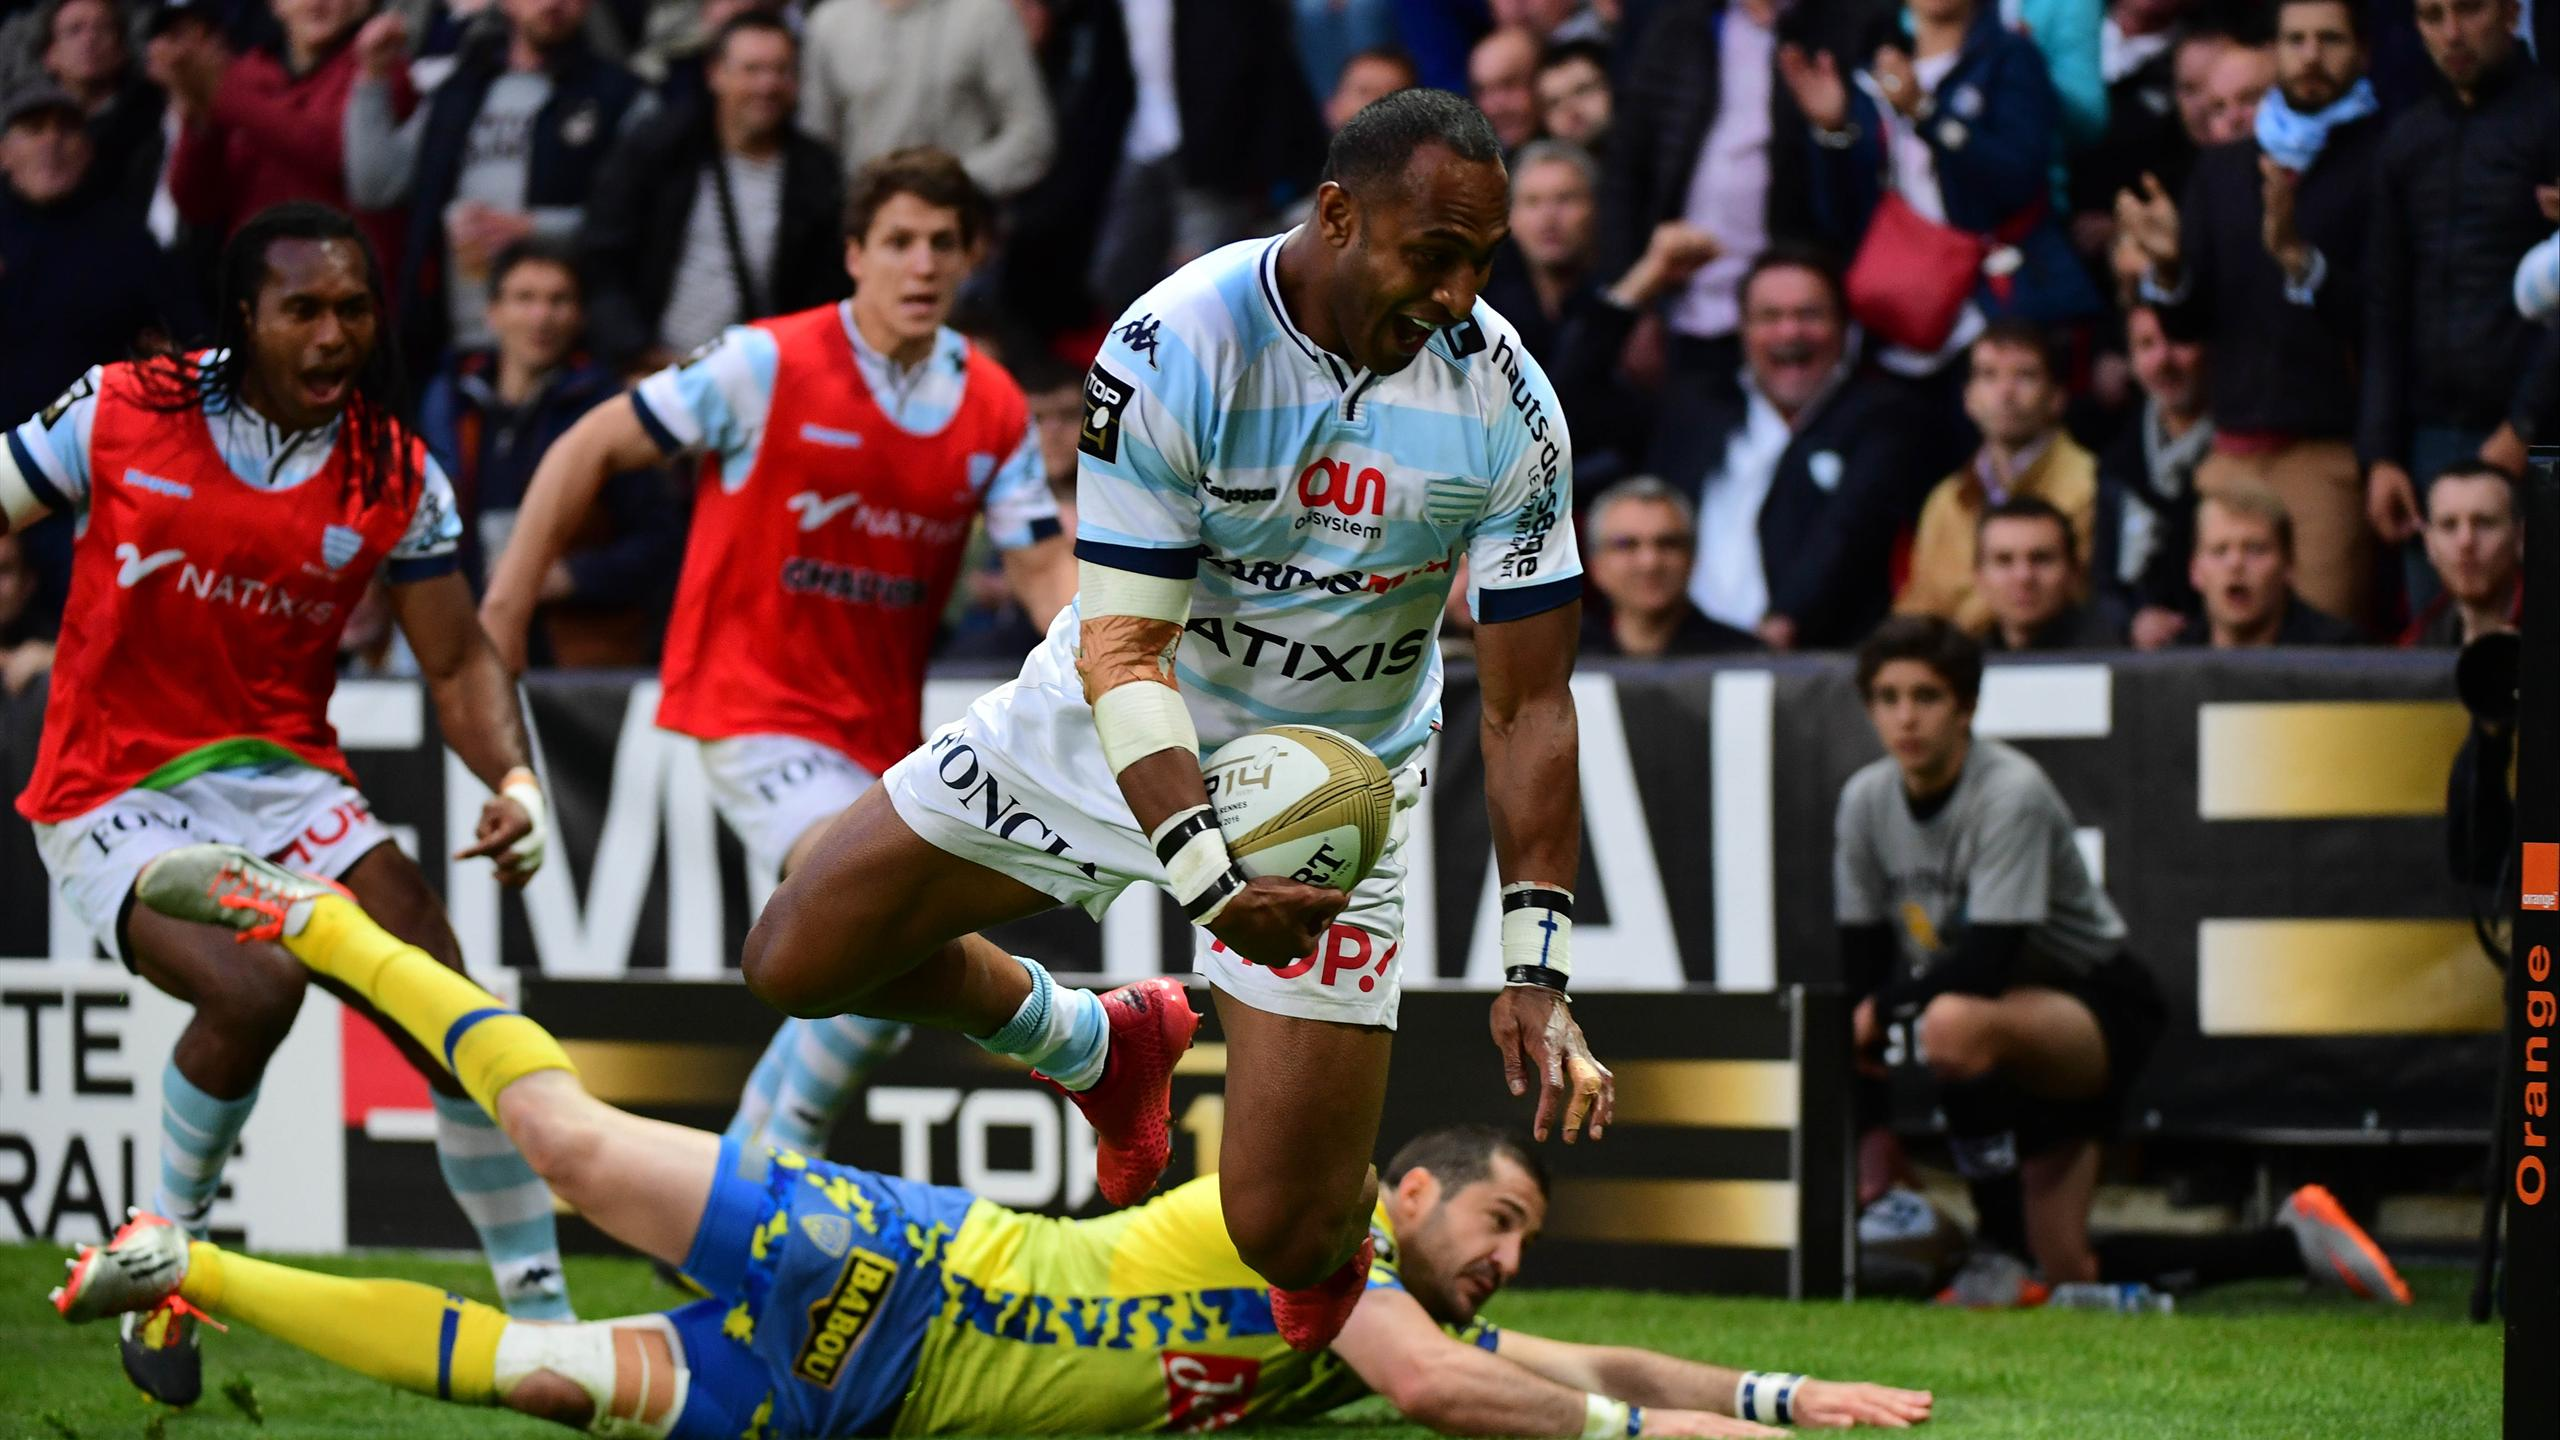 La joie de Joe Rokocoko (Racing 92) contre Clermont - 17 juin 2016